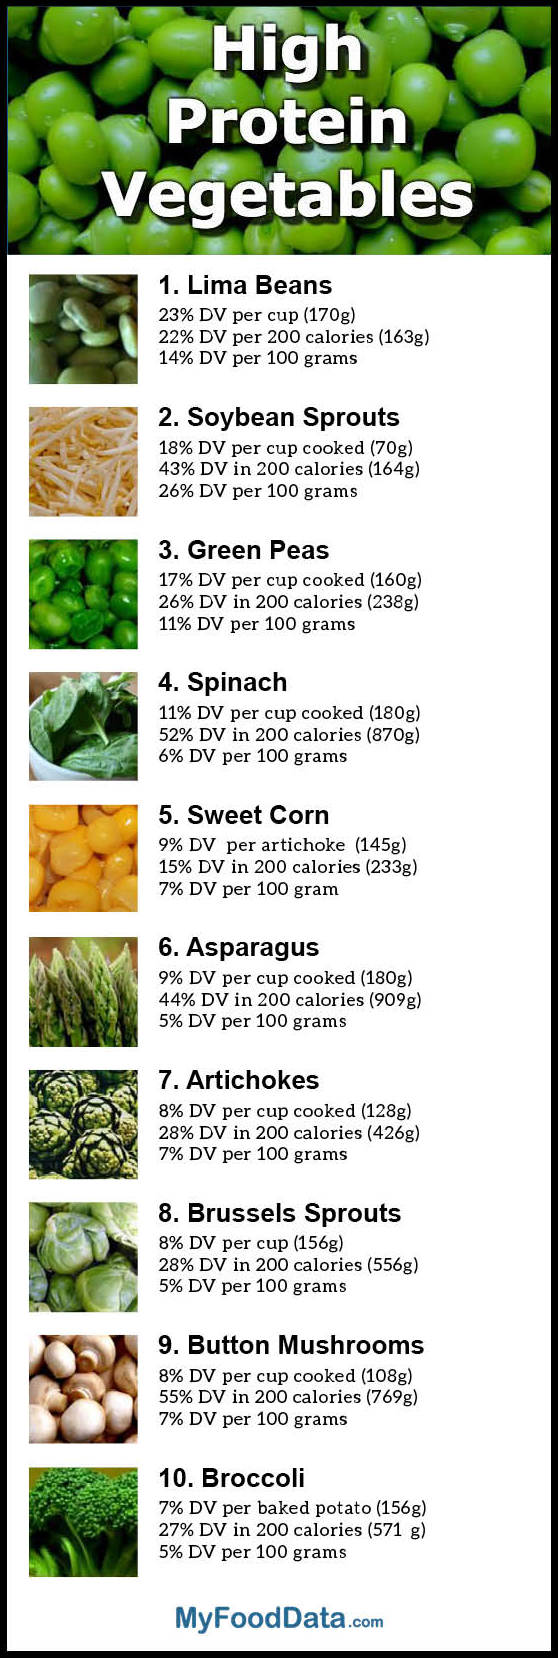 Vegetables That Are High In Protein